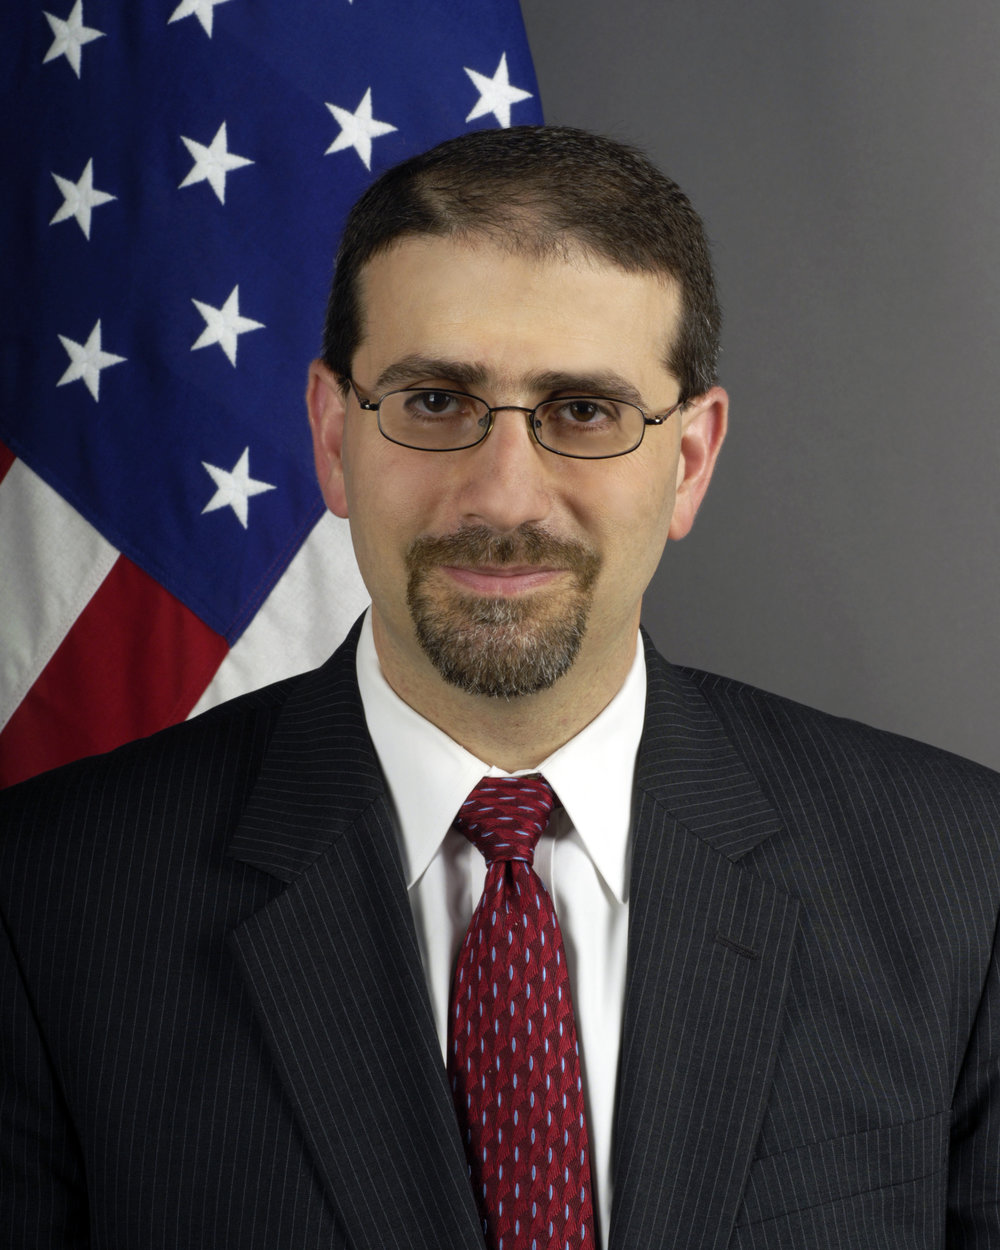 U.S. Ambassador to Israel Dan Shapiro. Credit: Wikimedia Commons.